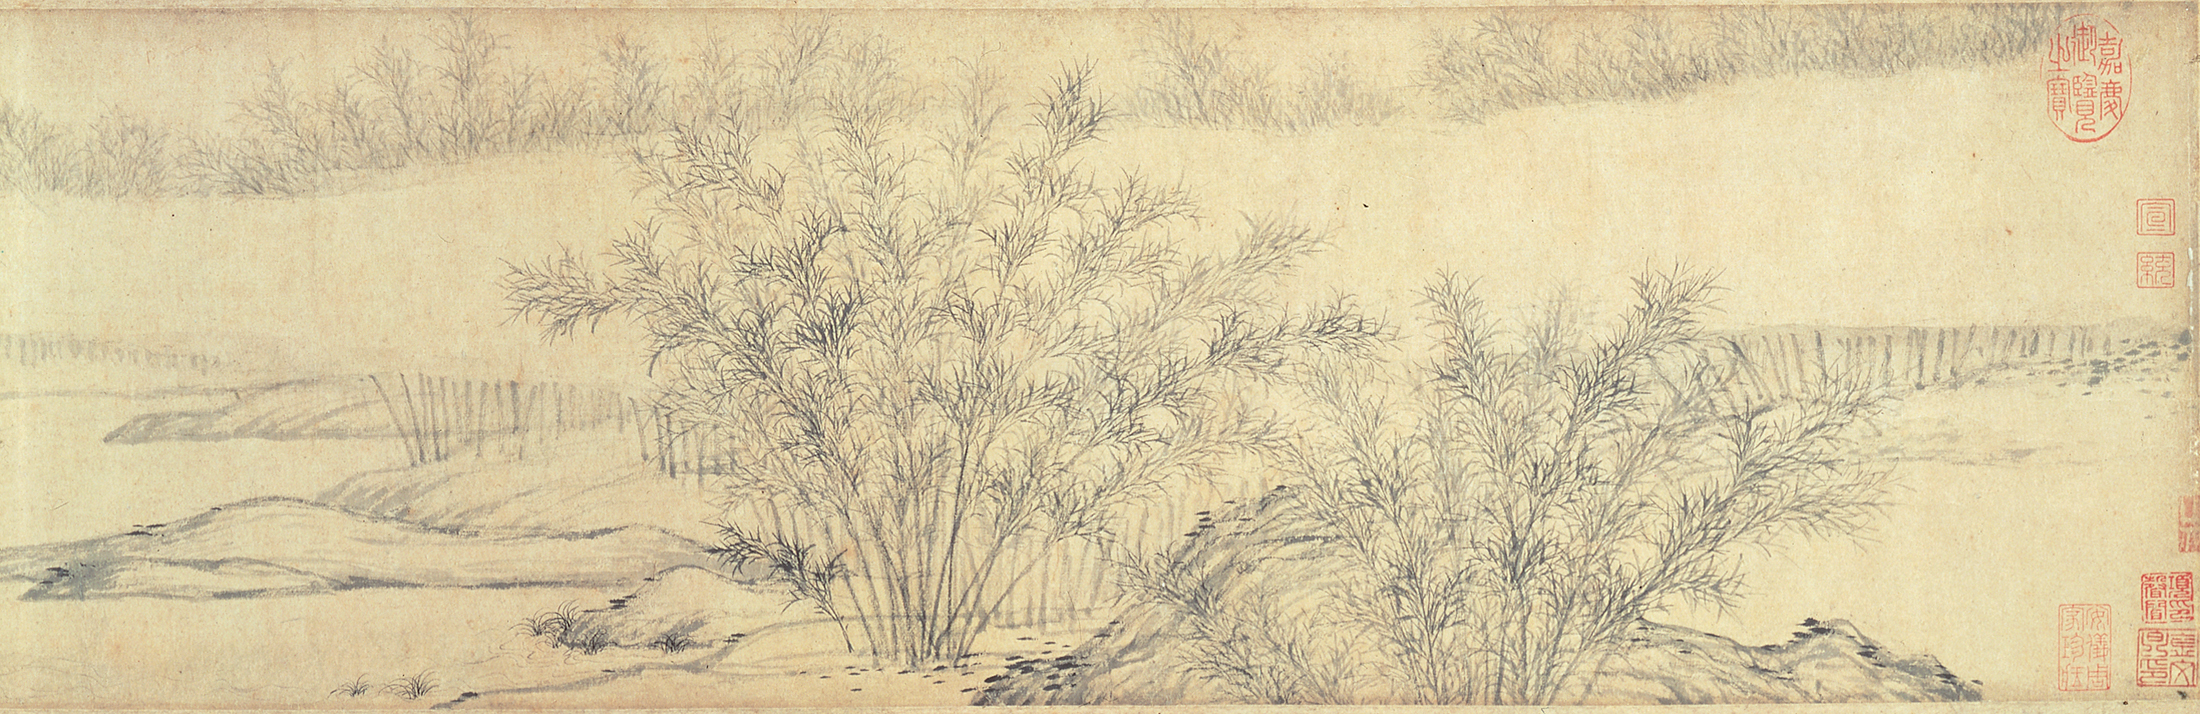 Bamboo grove painting